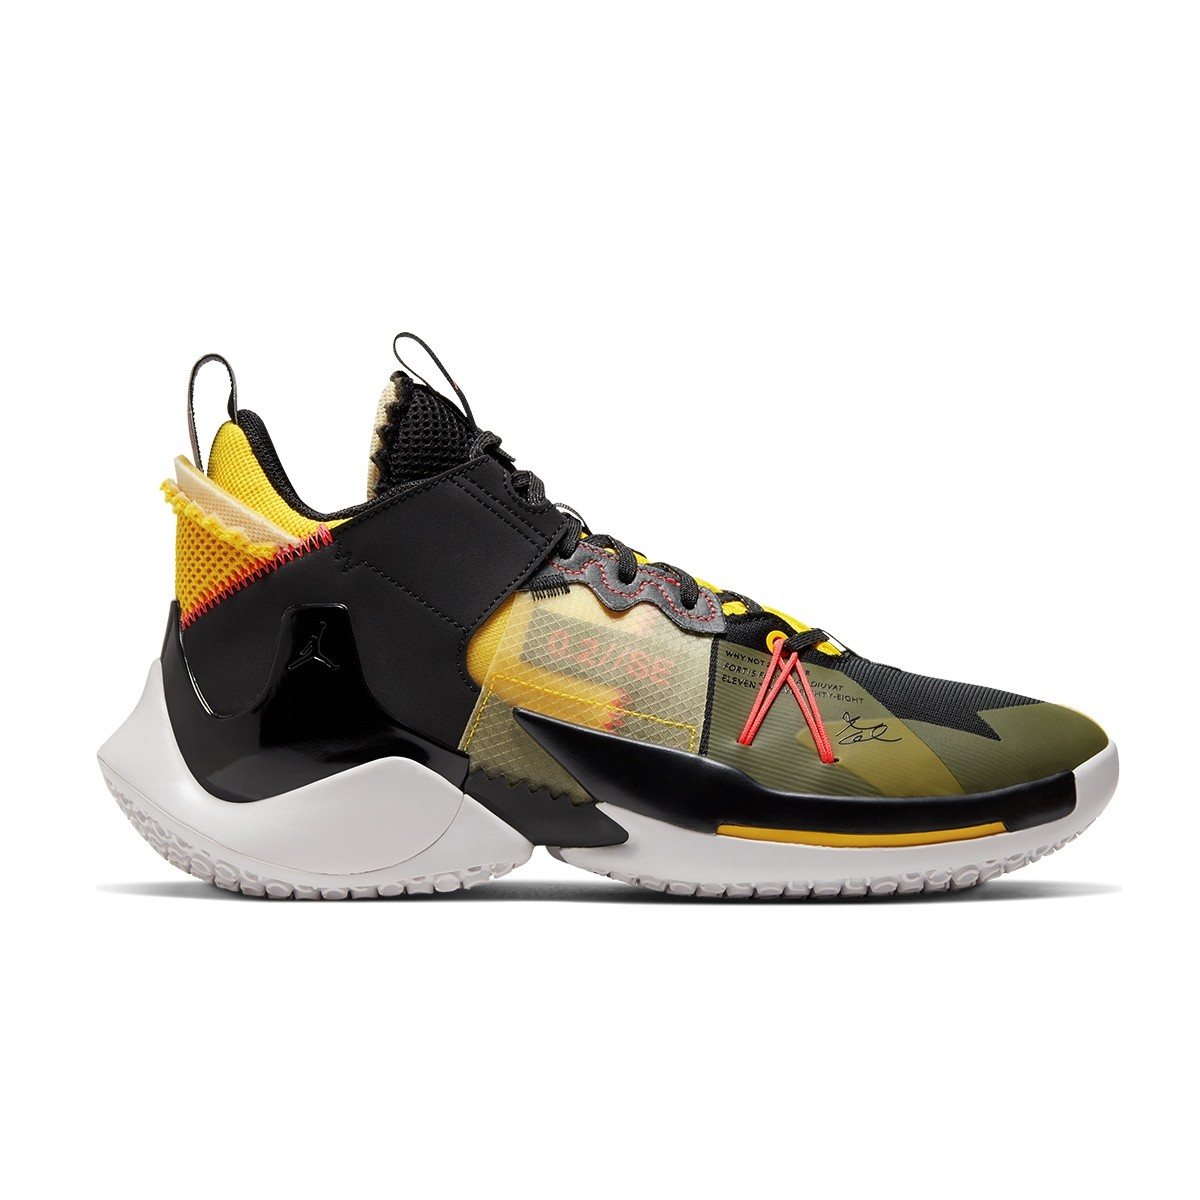 Jordan Why Not Zer0.2 SE 'Birthday'